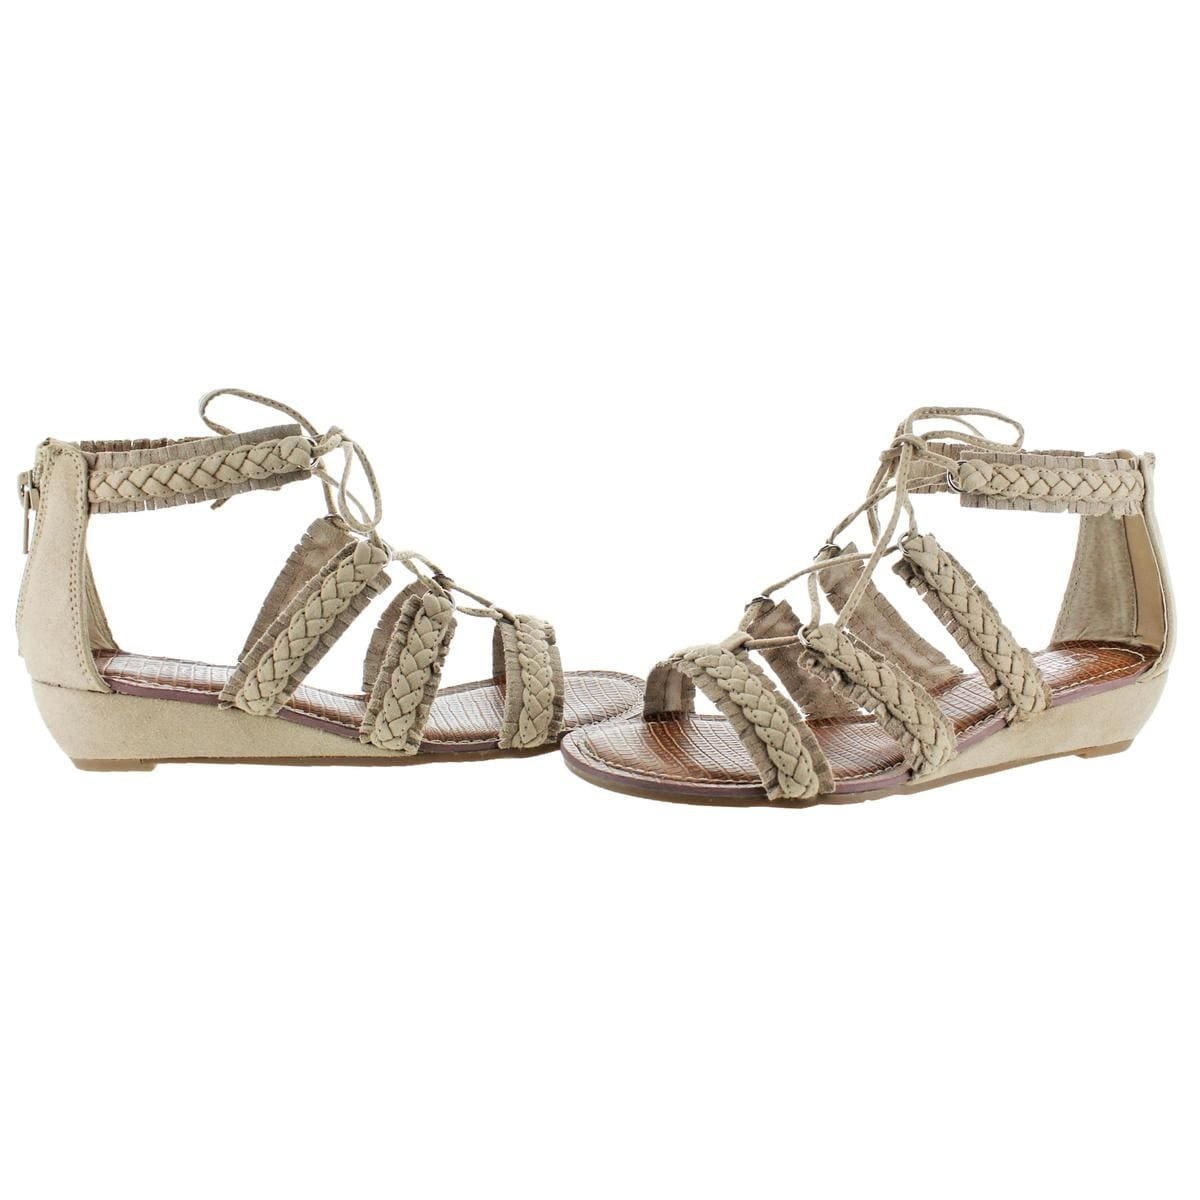 62b87c948d4b Shop Carlos by Carlos Santana Womens Kenzie Gladiator Sandals Ghillie  Fringe - Free Shipping On Orders Over  45 - Overstock - 20996998